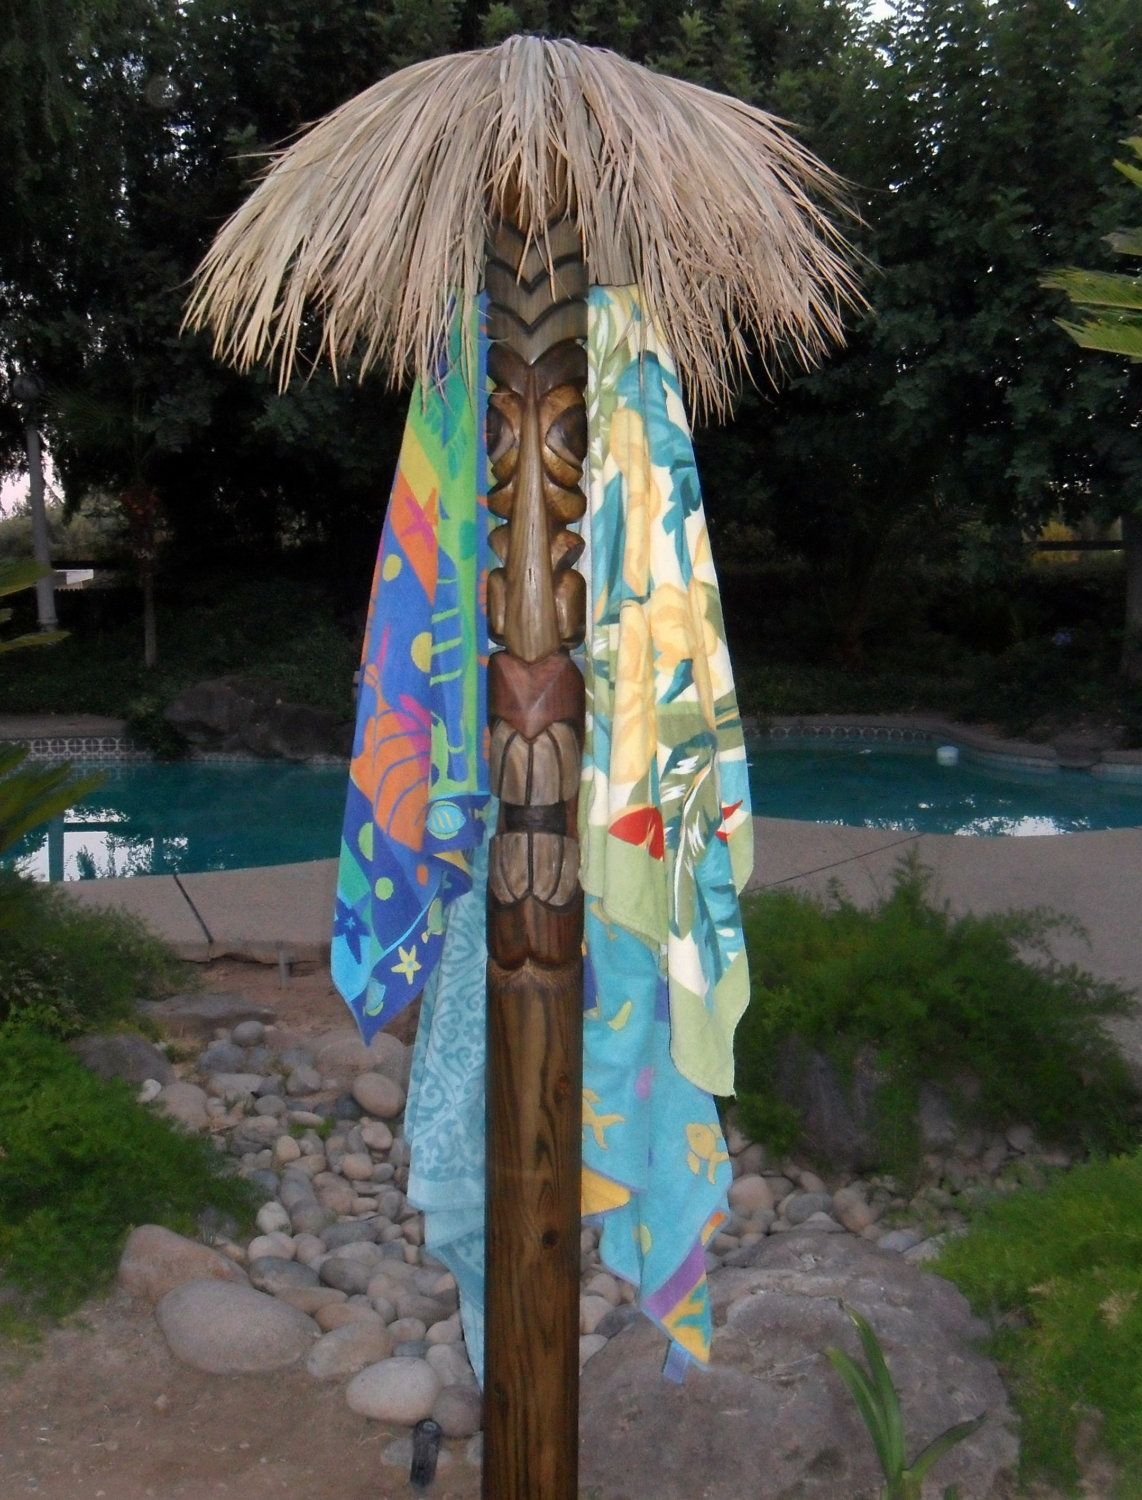 Tiki Pole Towel Rack Stands Over 8 Feet Tall This Tiki Totem Easily Holds 5 Large Beach Towels